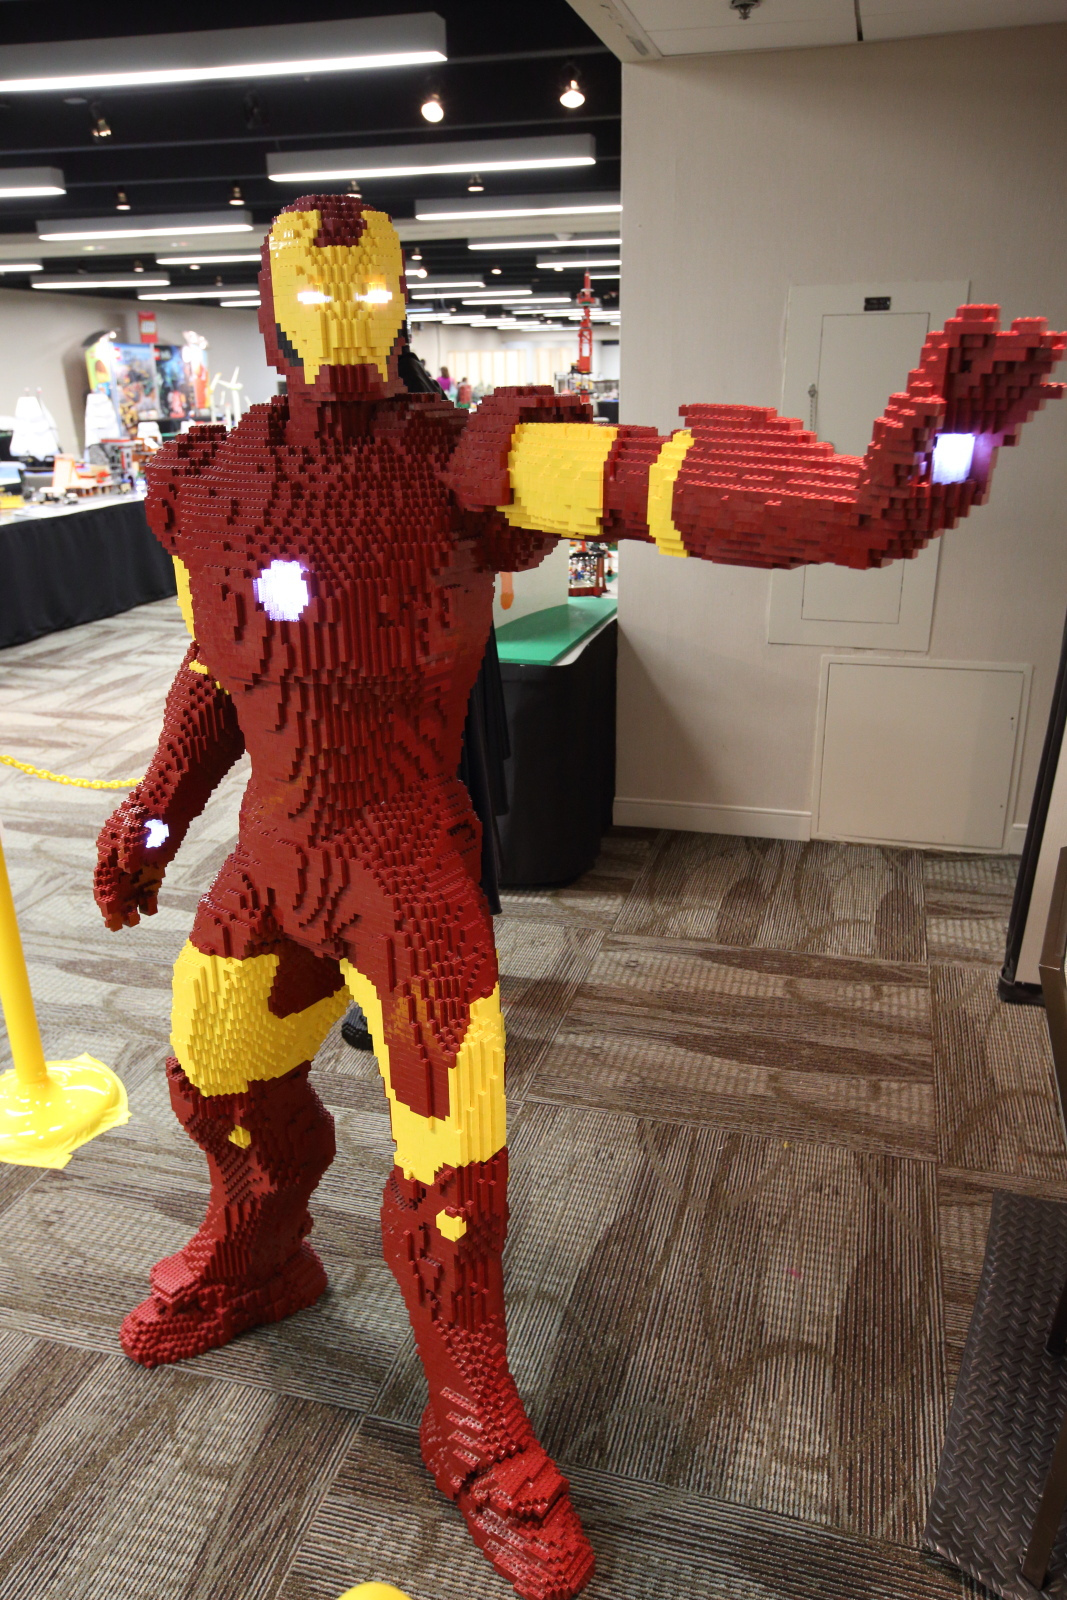 Iron Man LEGO Build Is An Epic Life-Size Brick Marvel